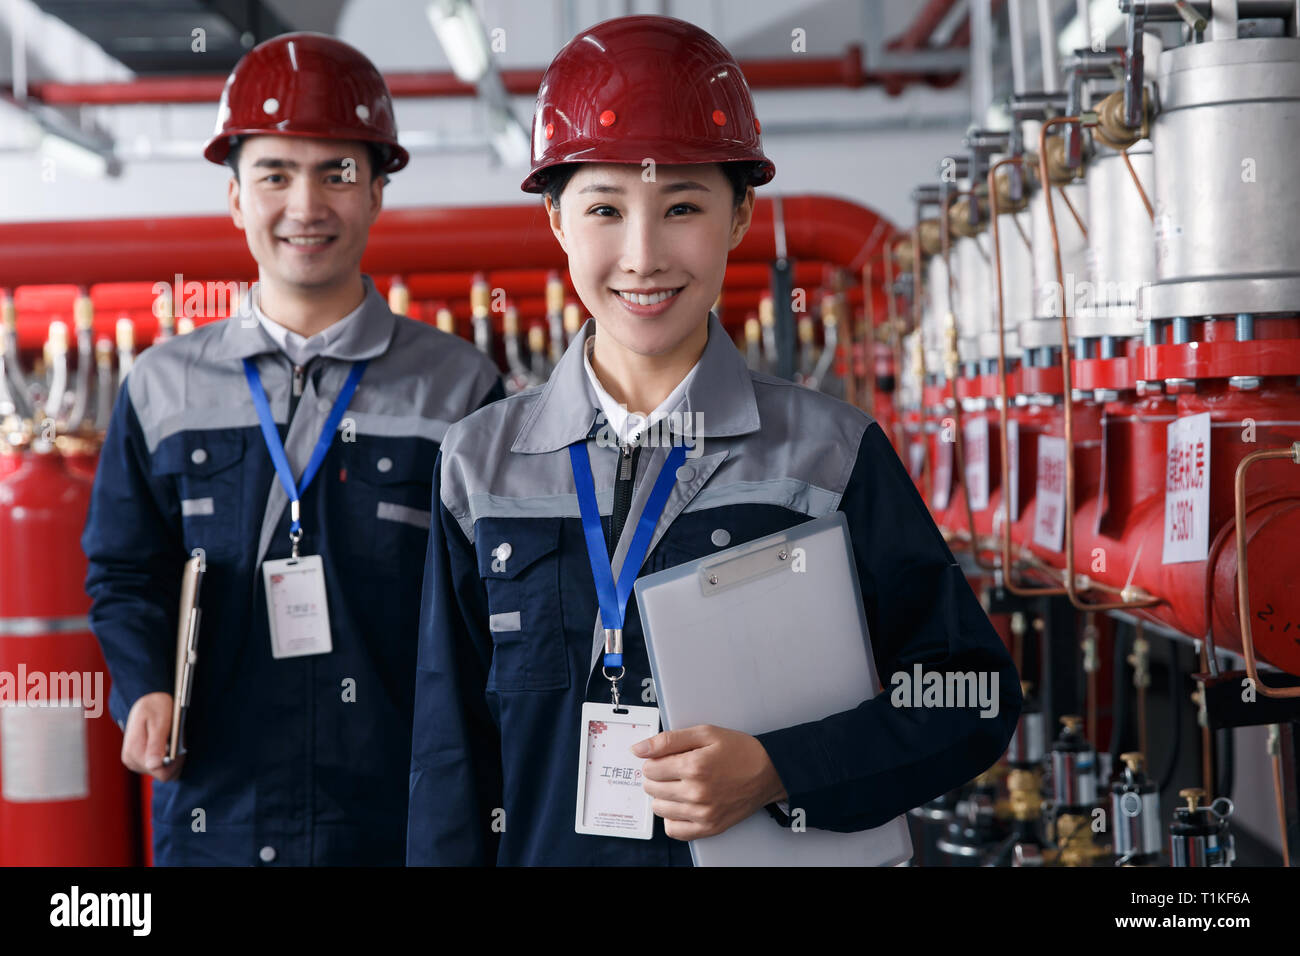 Technical personnel in the factory fire control room inspection - Stock Image